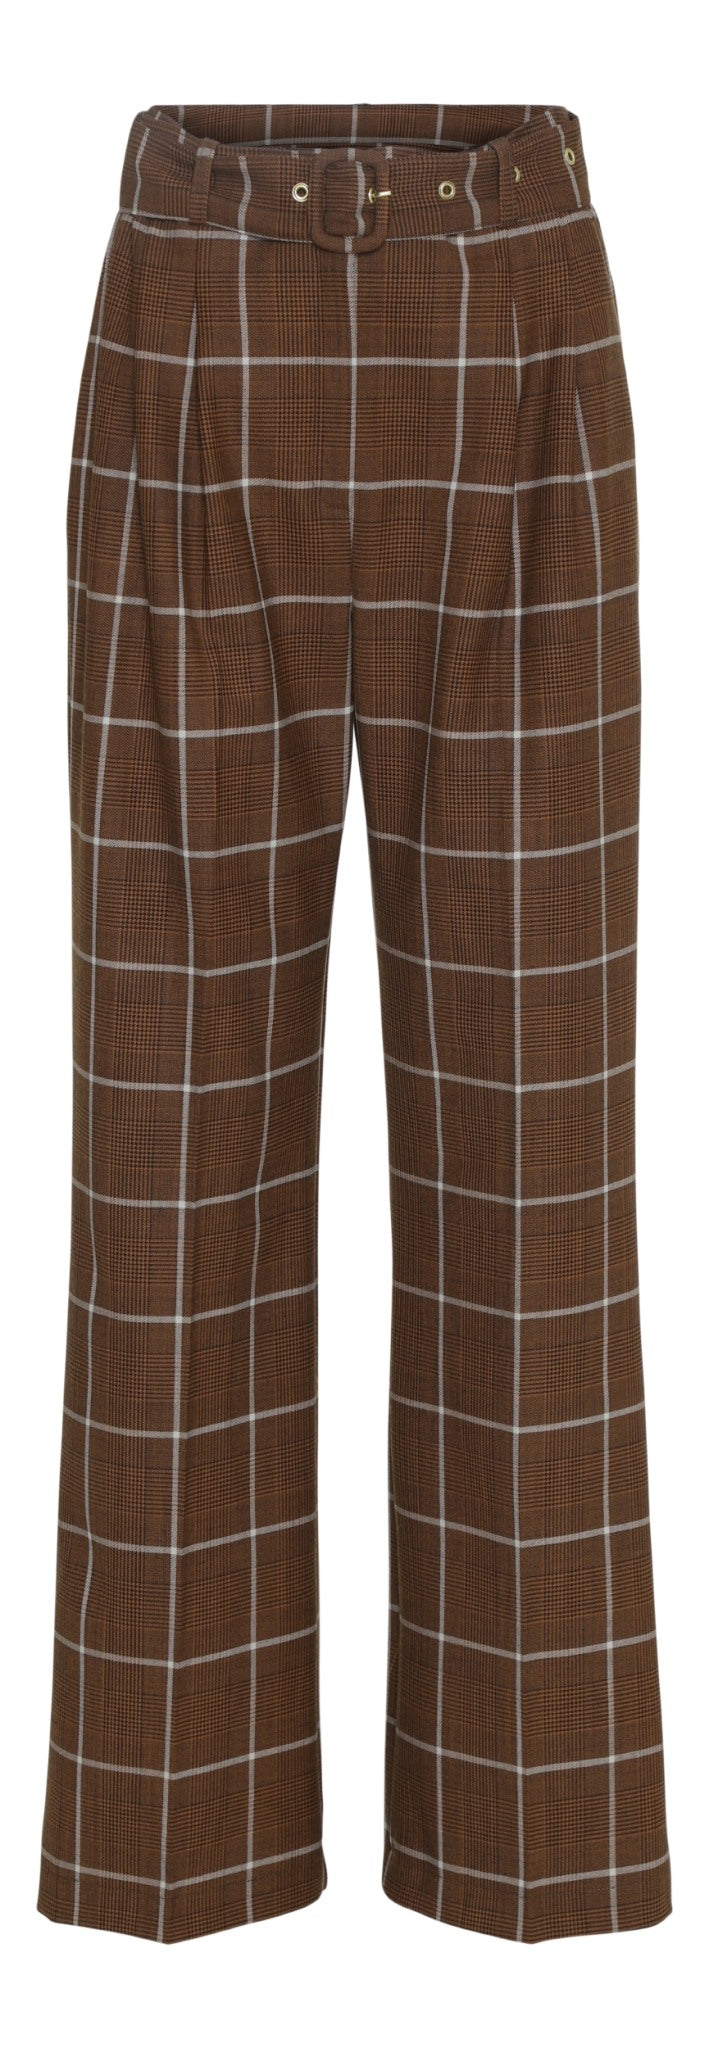 Ashia Pants - Brown Checks